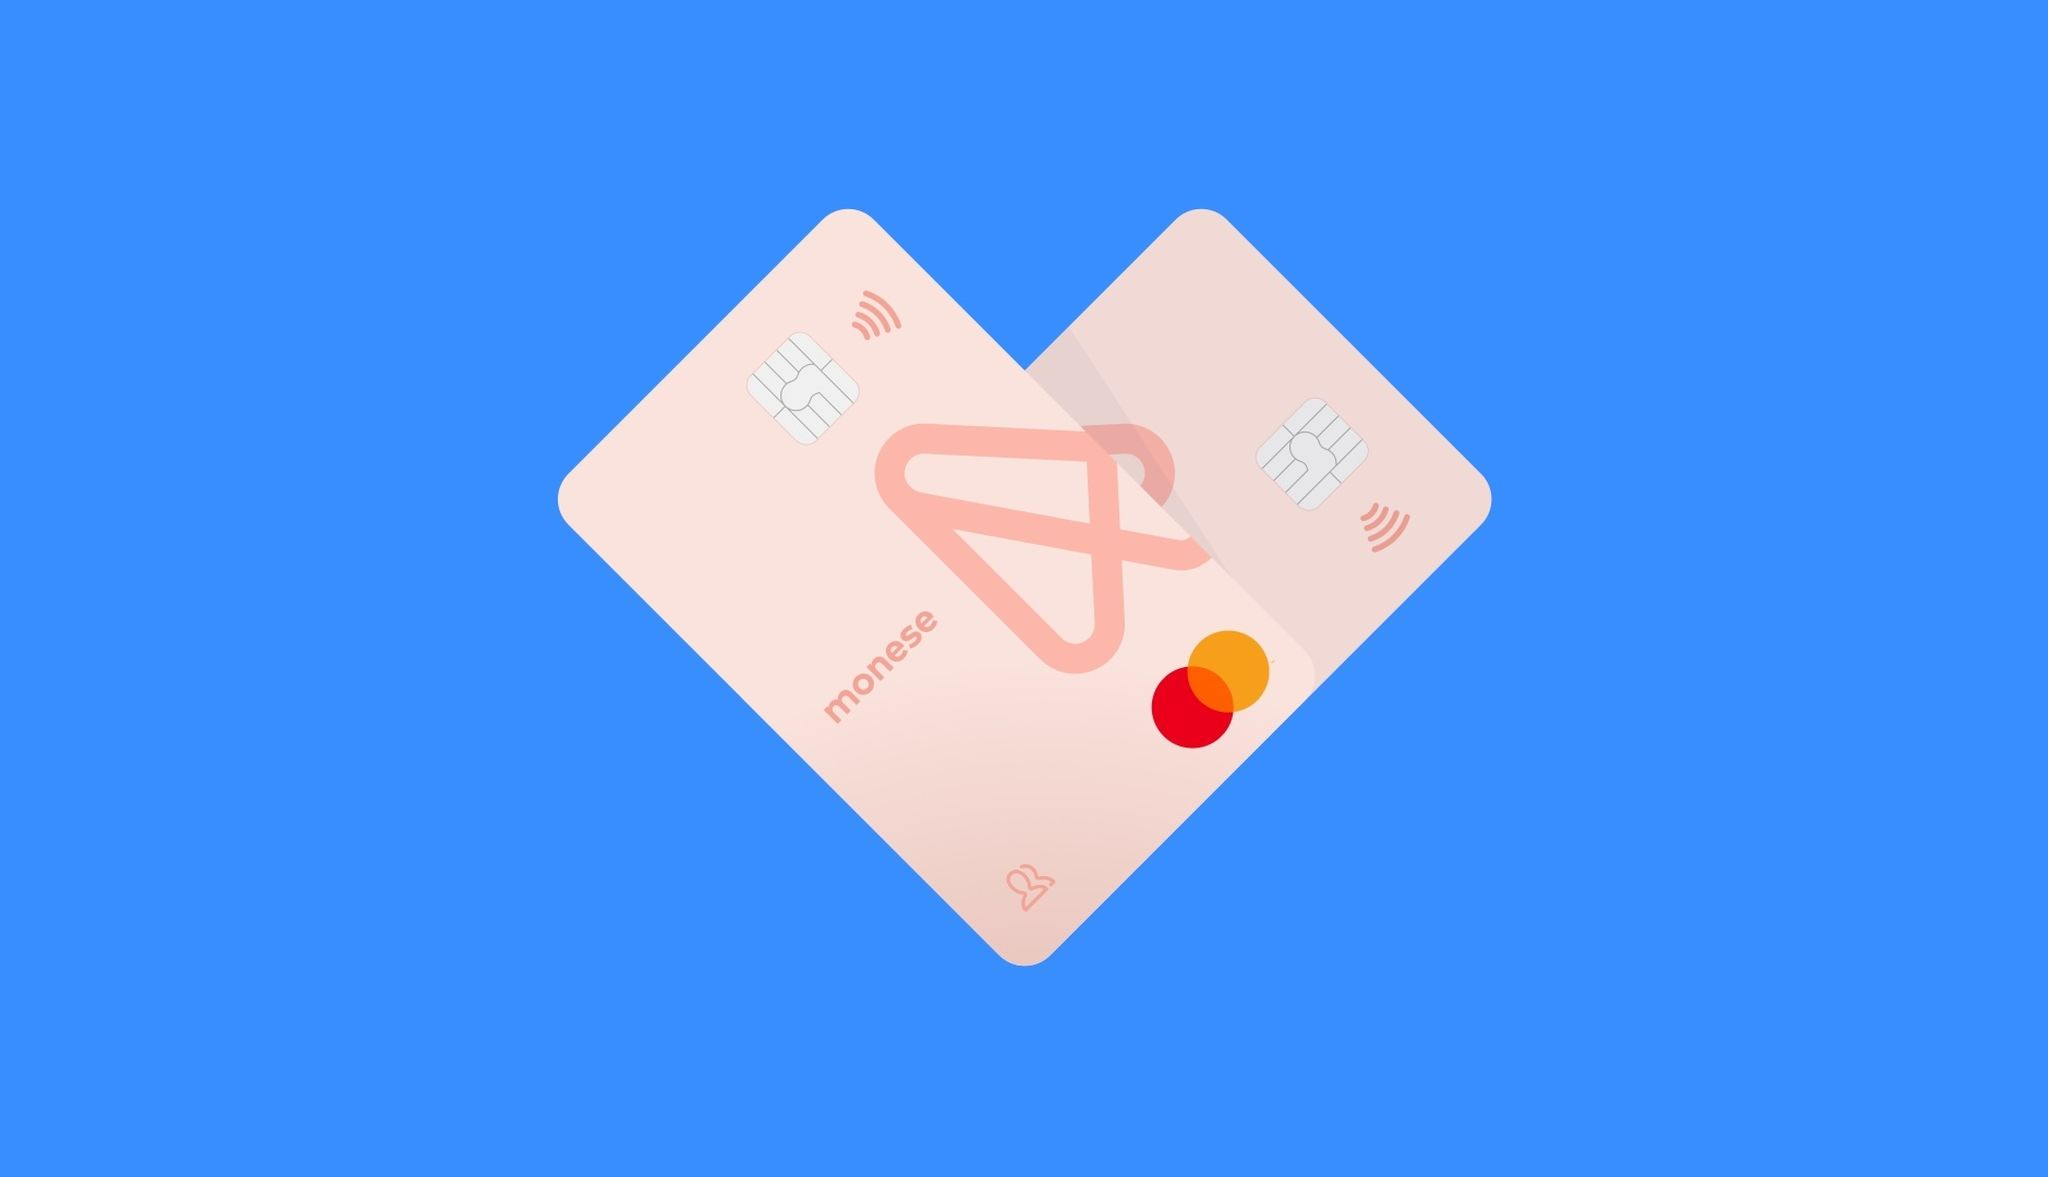 Heart joint account cards